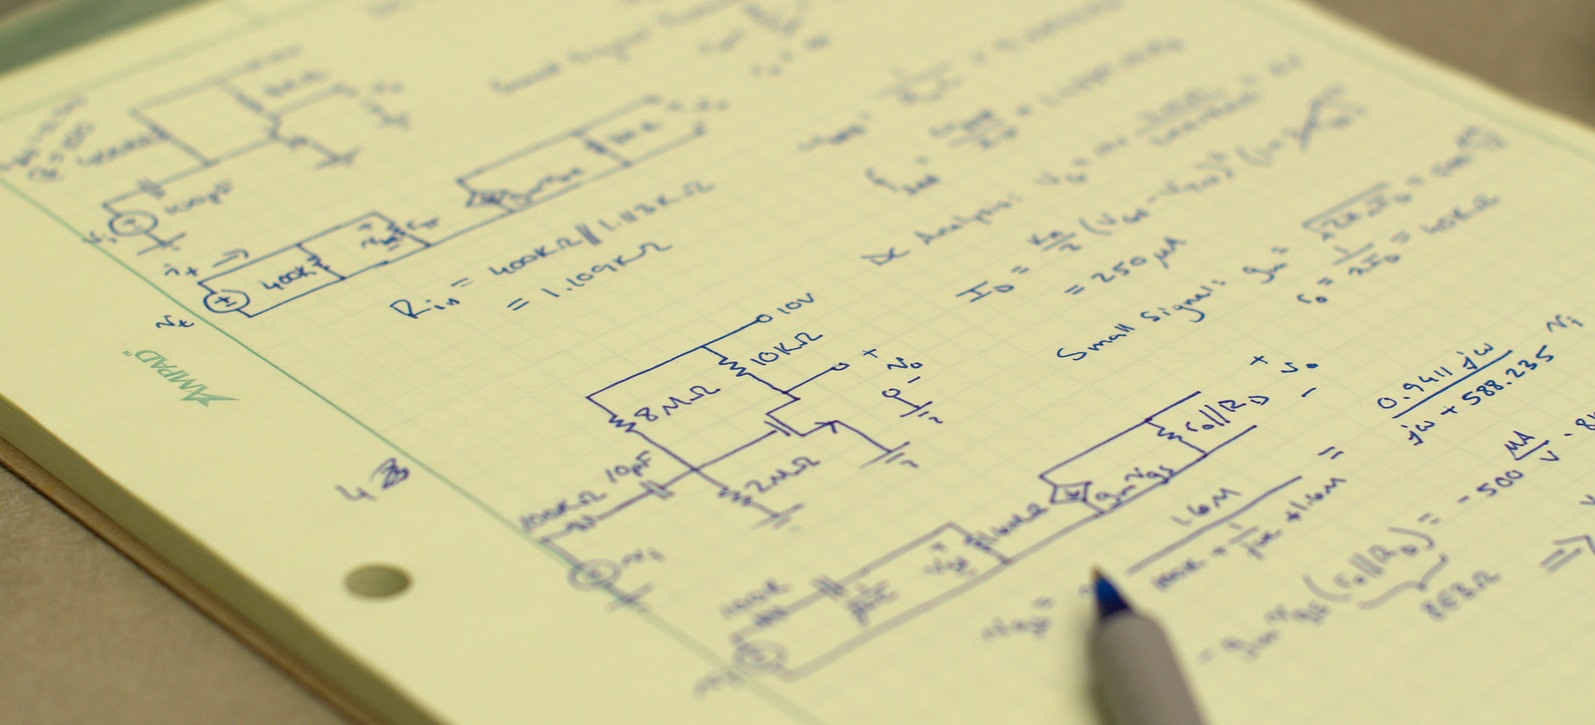 Photo of an engineering paper